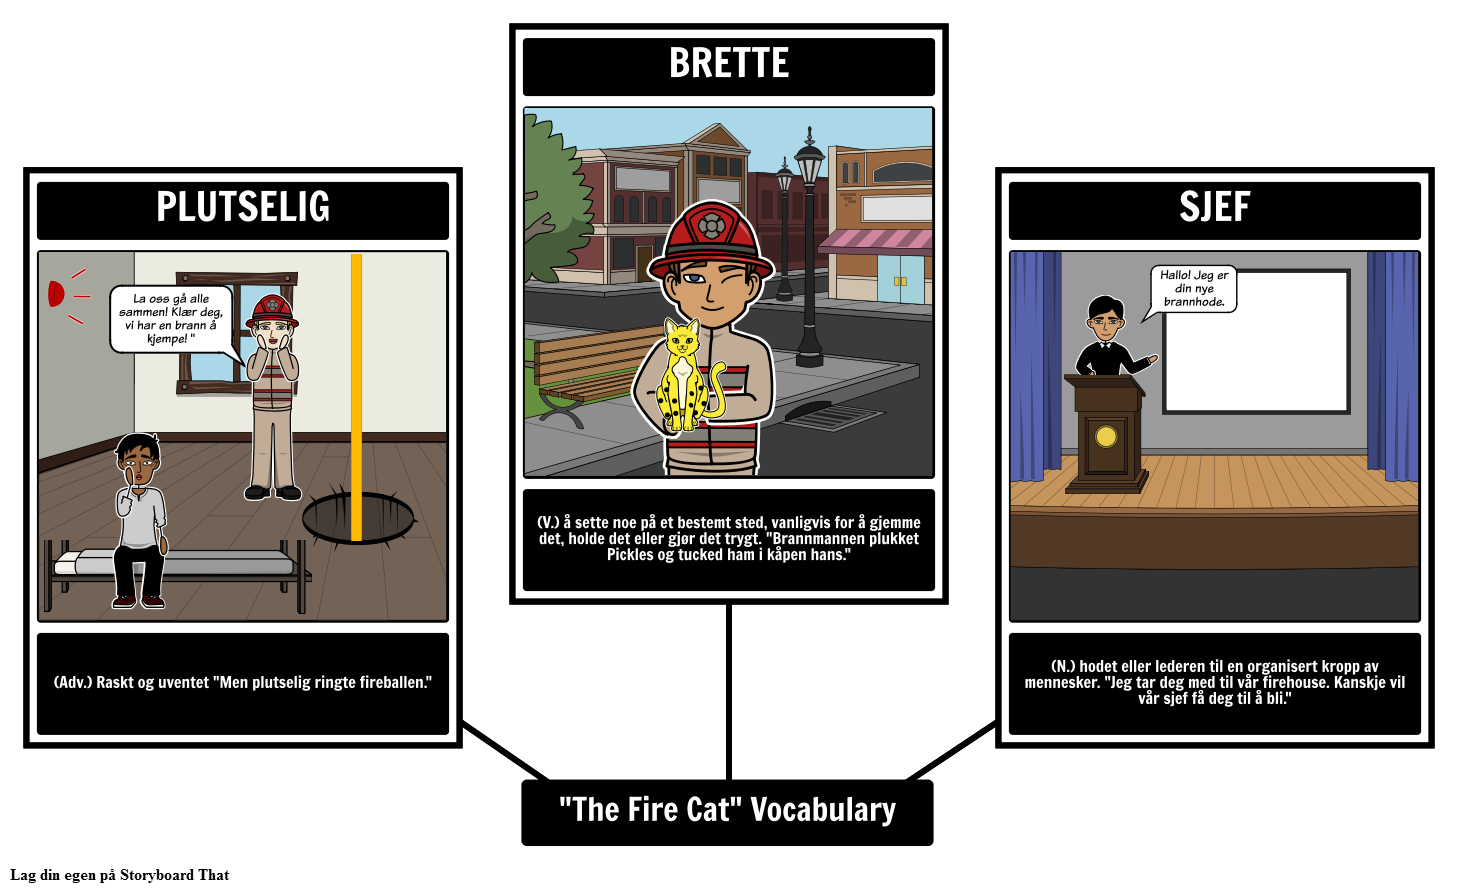 The Fire Cat Vocabulary